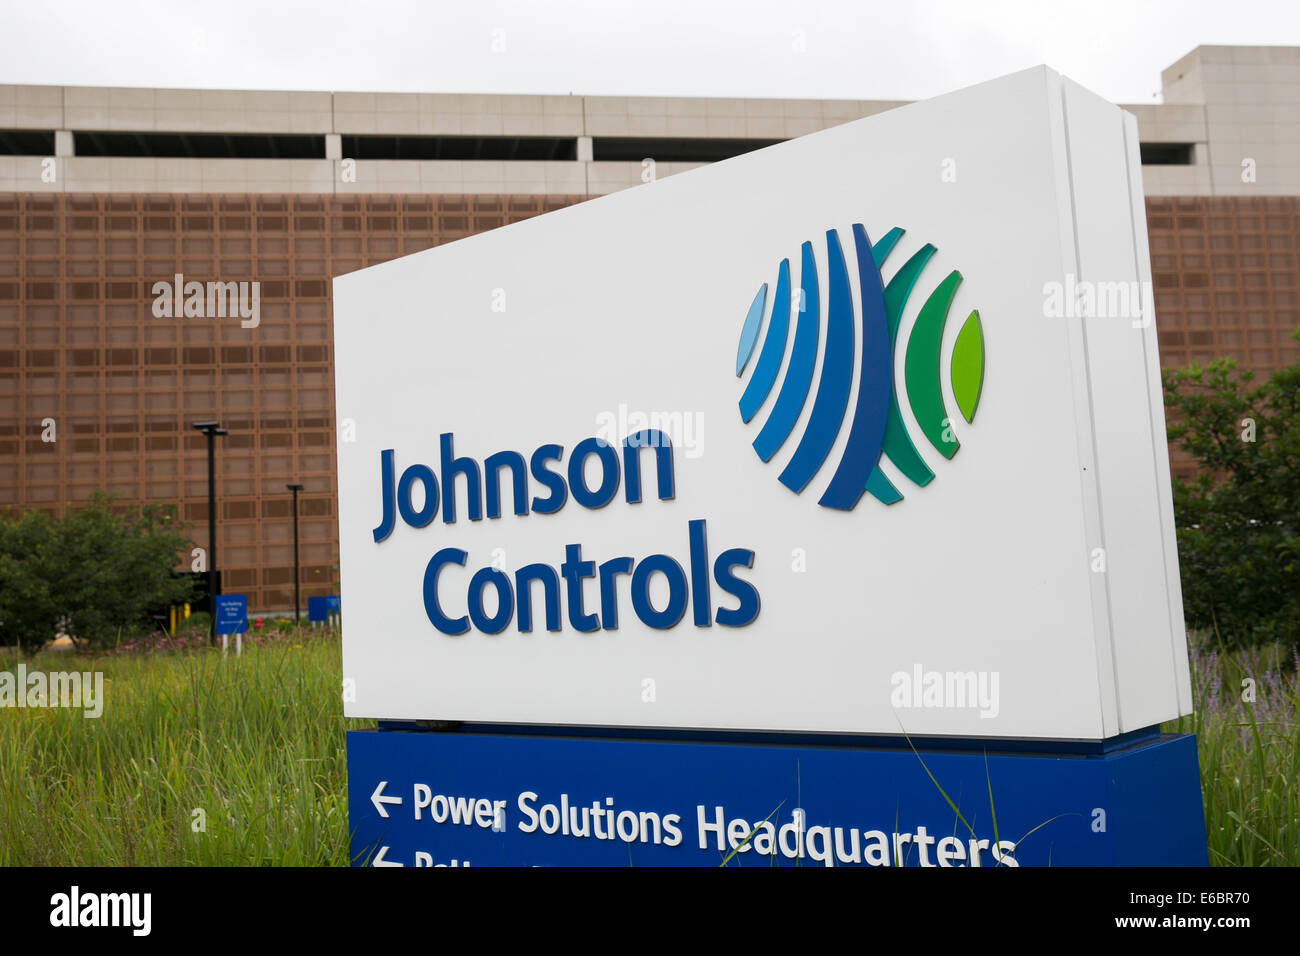 The headquarters of Johnson Controls in Milwaukee, Wisconsin. - Stock Image